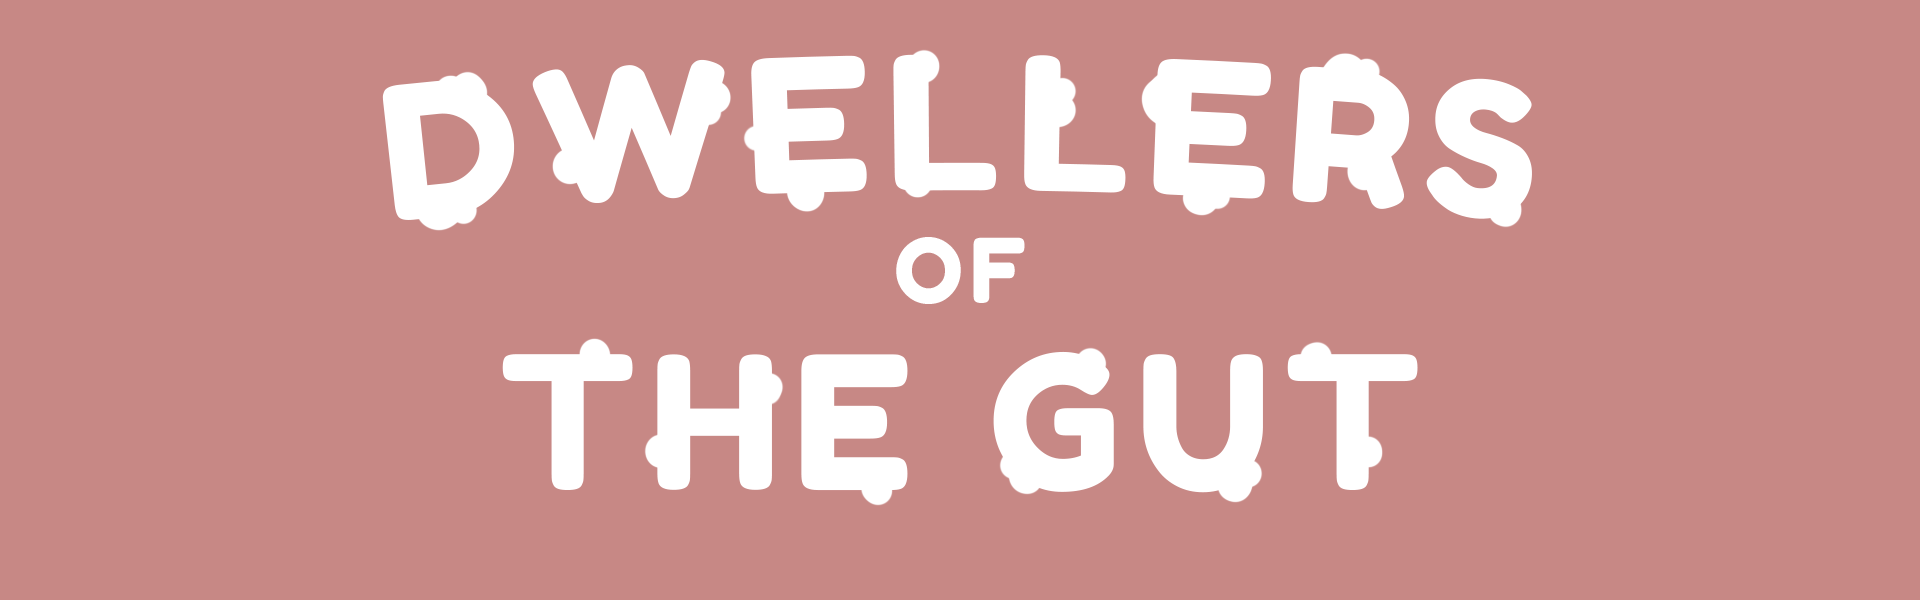 Dwellers of the Gut